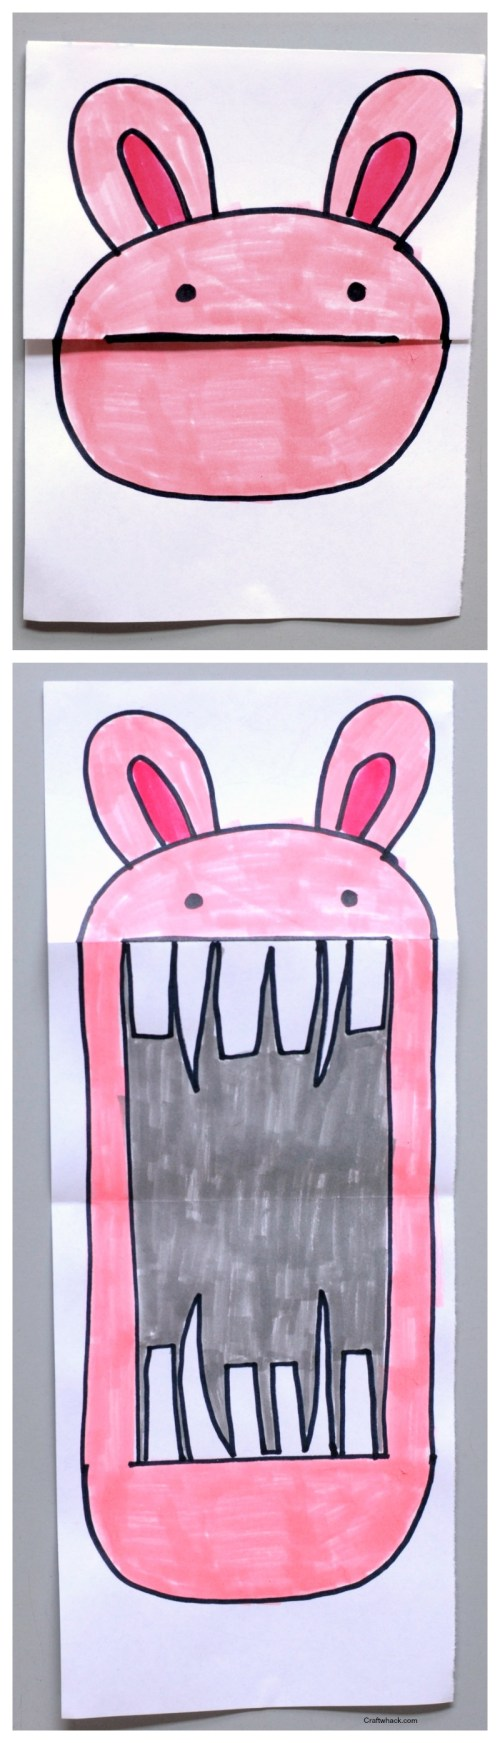 bunny-paper-project